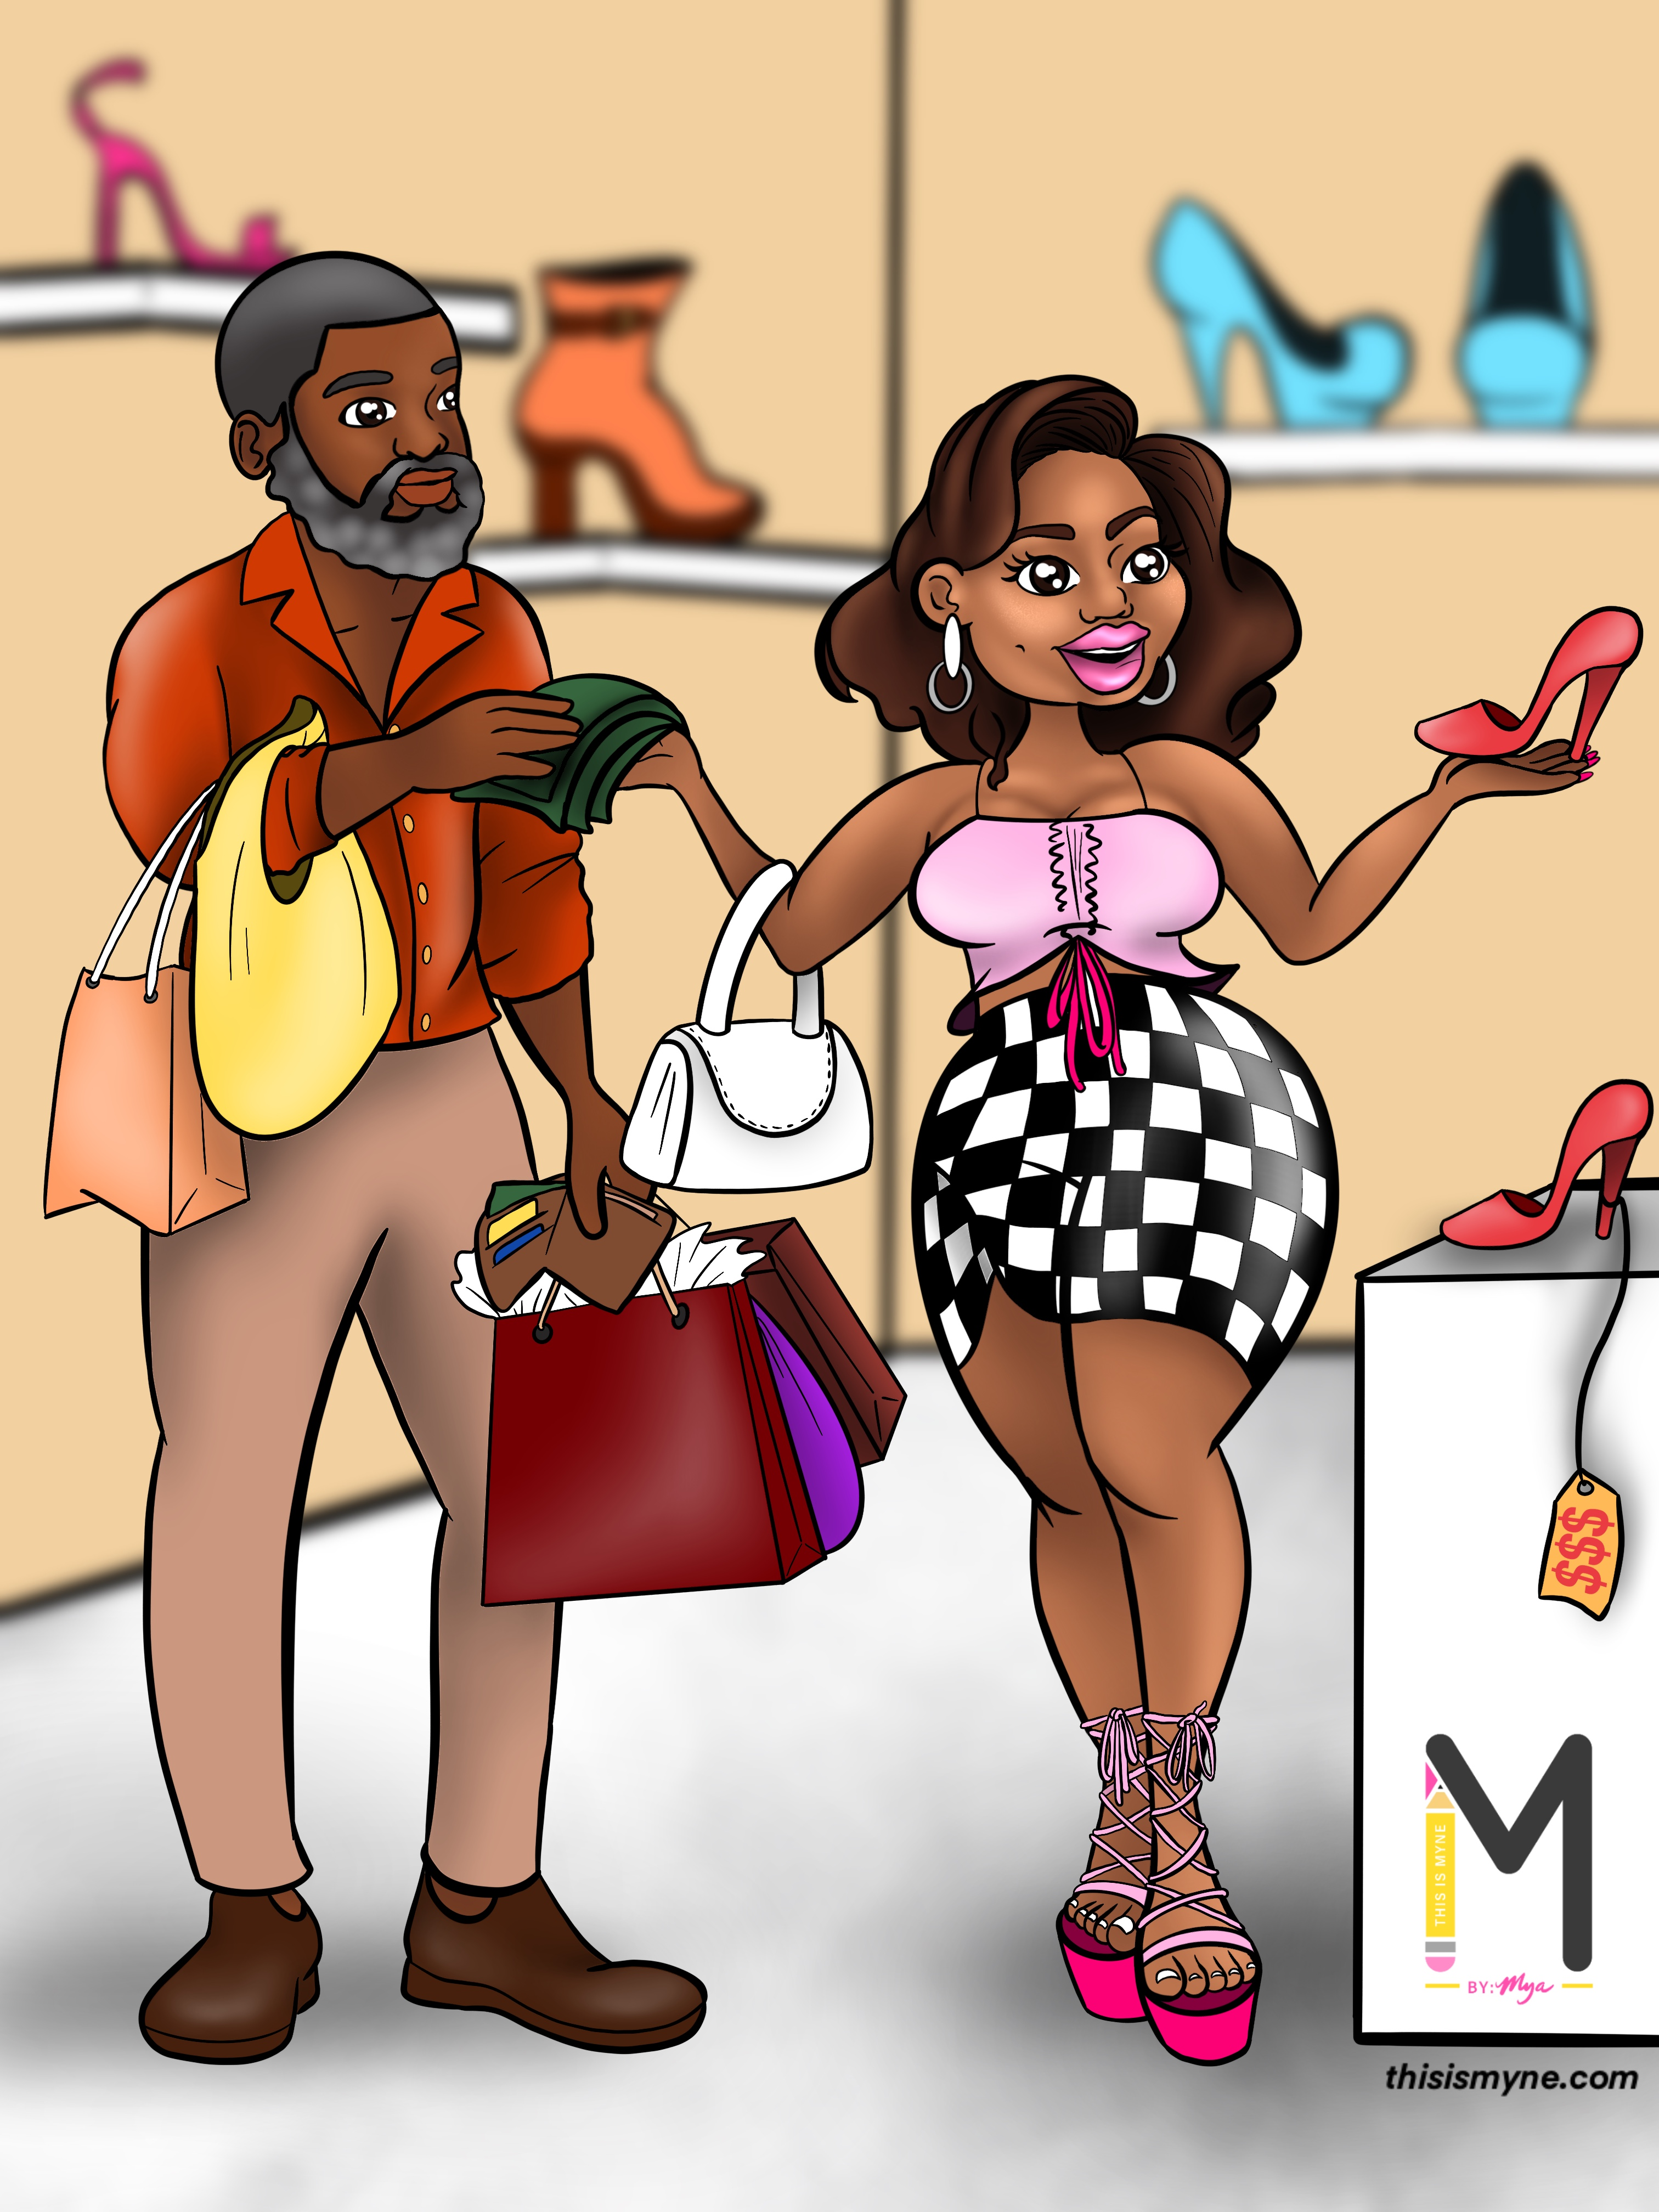 How to get a guy to take you shopping.